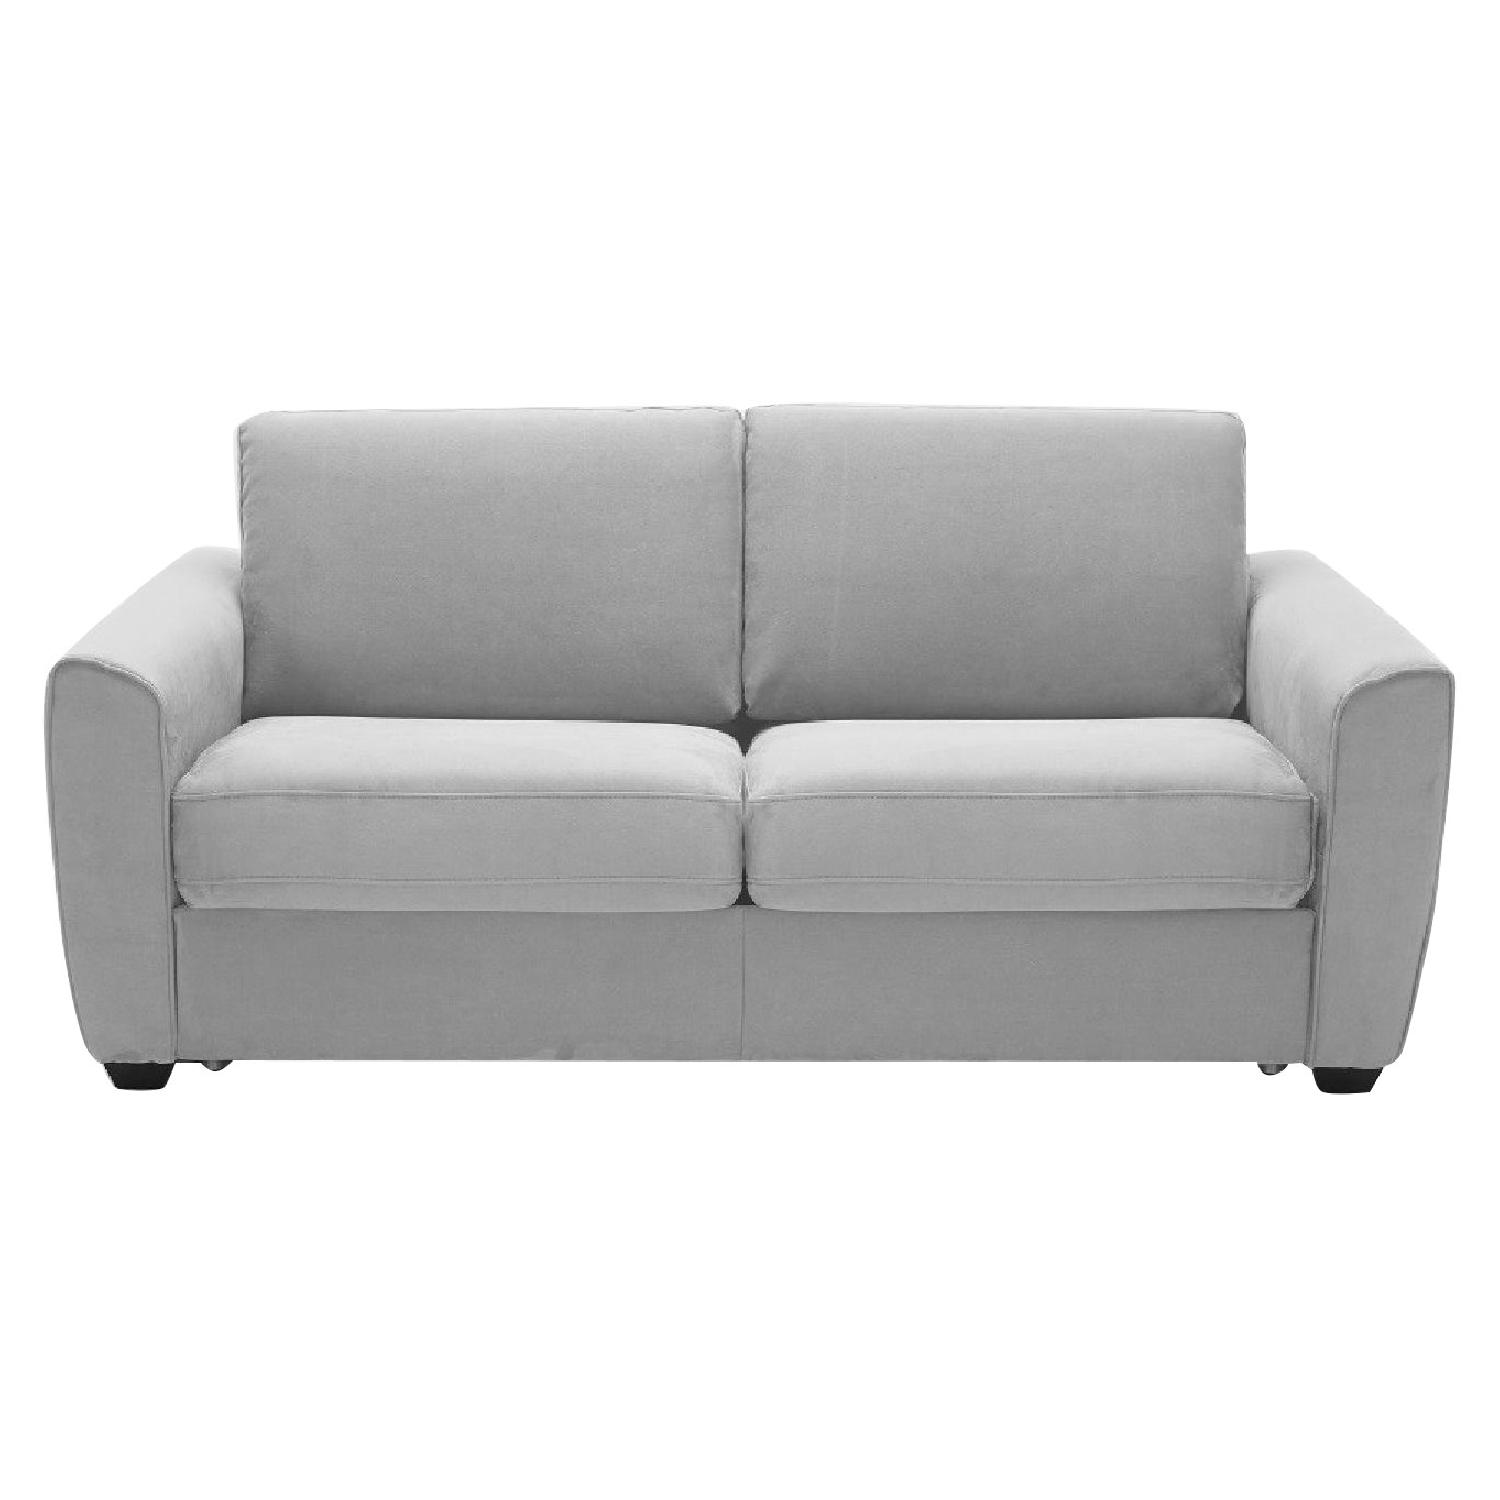 Brilliant Grey Microfiber Sofa Bed W Memory Foam Sleeper Aptdeco Ibusinesslaw Wood Chair Design Ideas Ibusinesslaworg